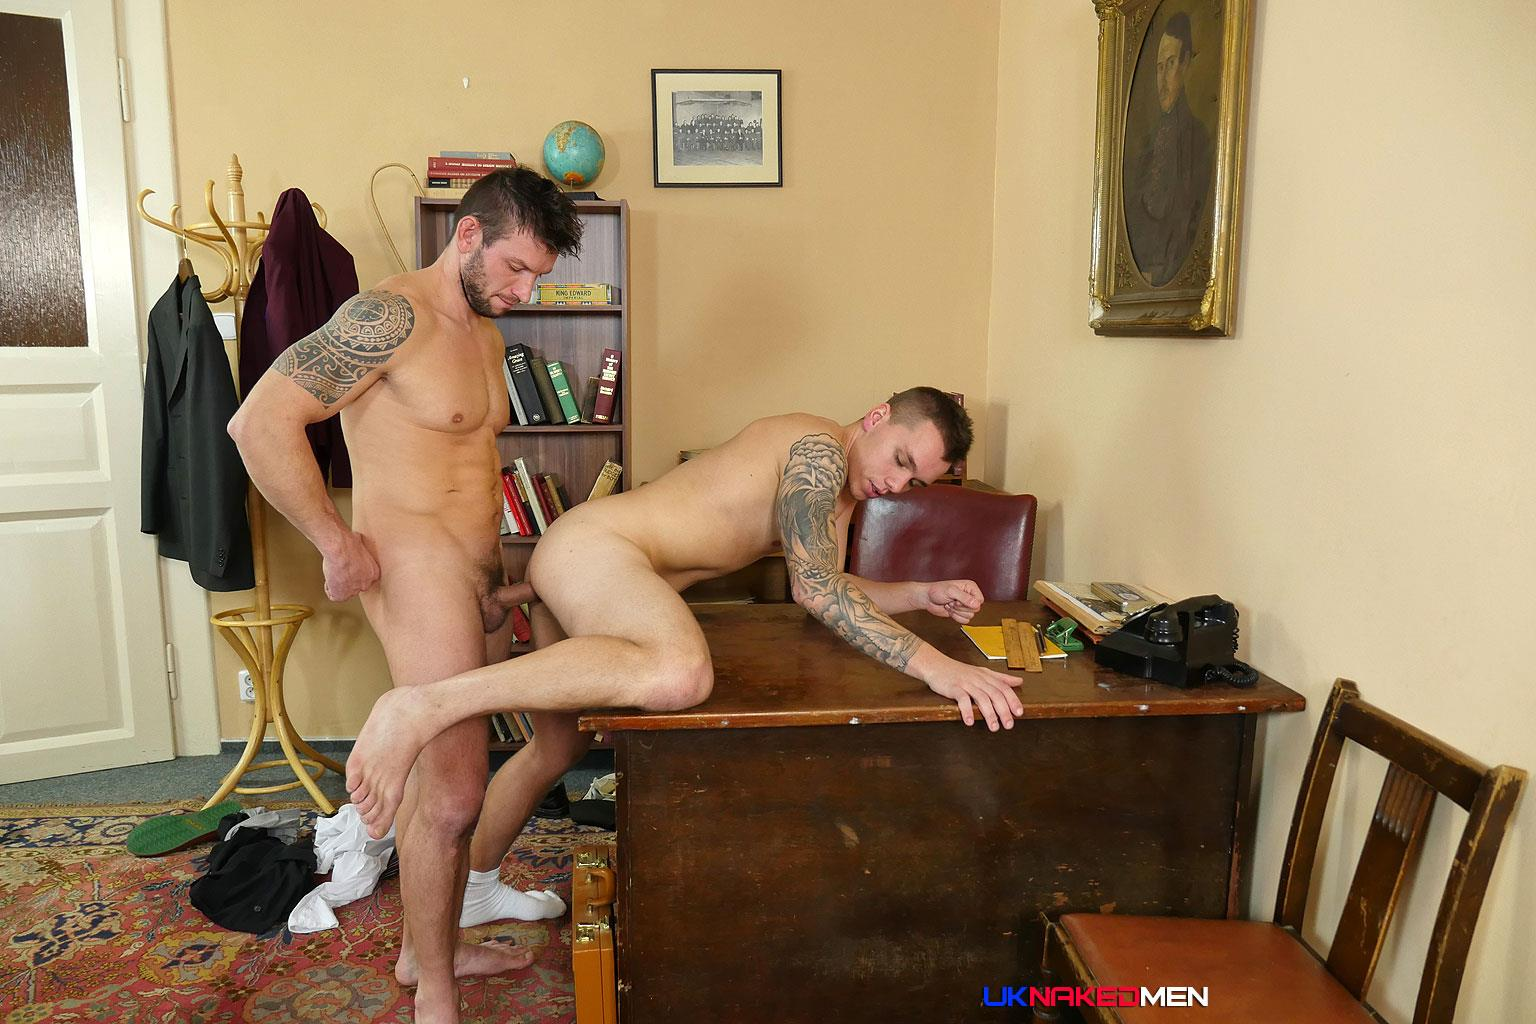 UK-Naked-Men-Rado-Zusila-and-Mickey-Rush-Uncut-Cock-Bareback-Amateur-Gay-Porn-12 Younger British Guy Takes An Uncut Cock Up The Ass Bareback For The First Time